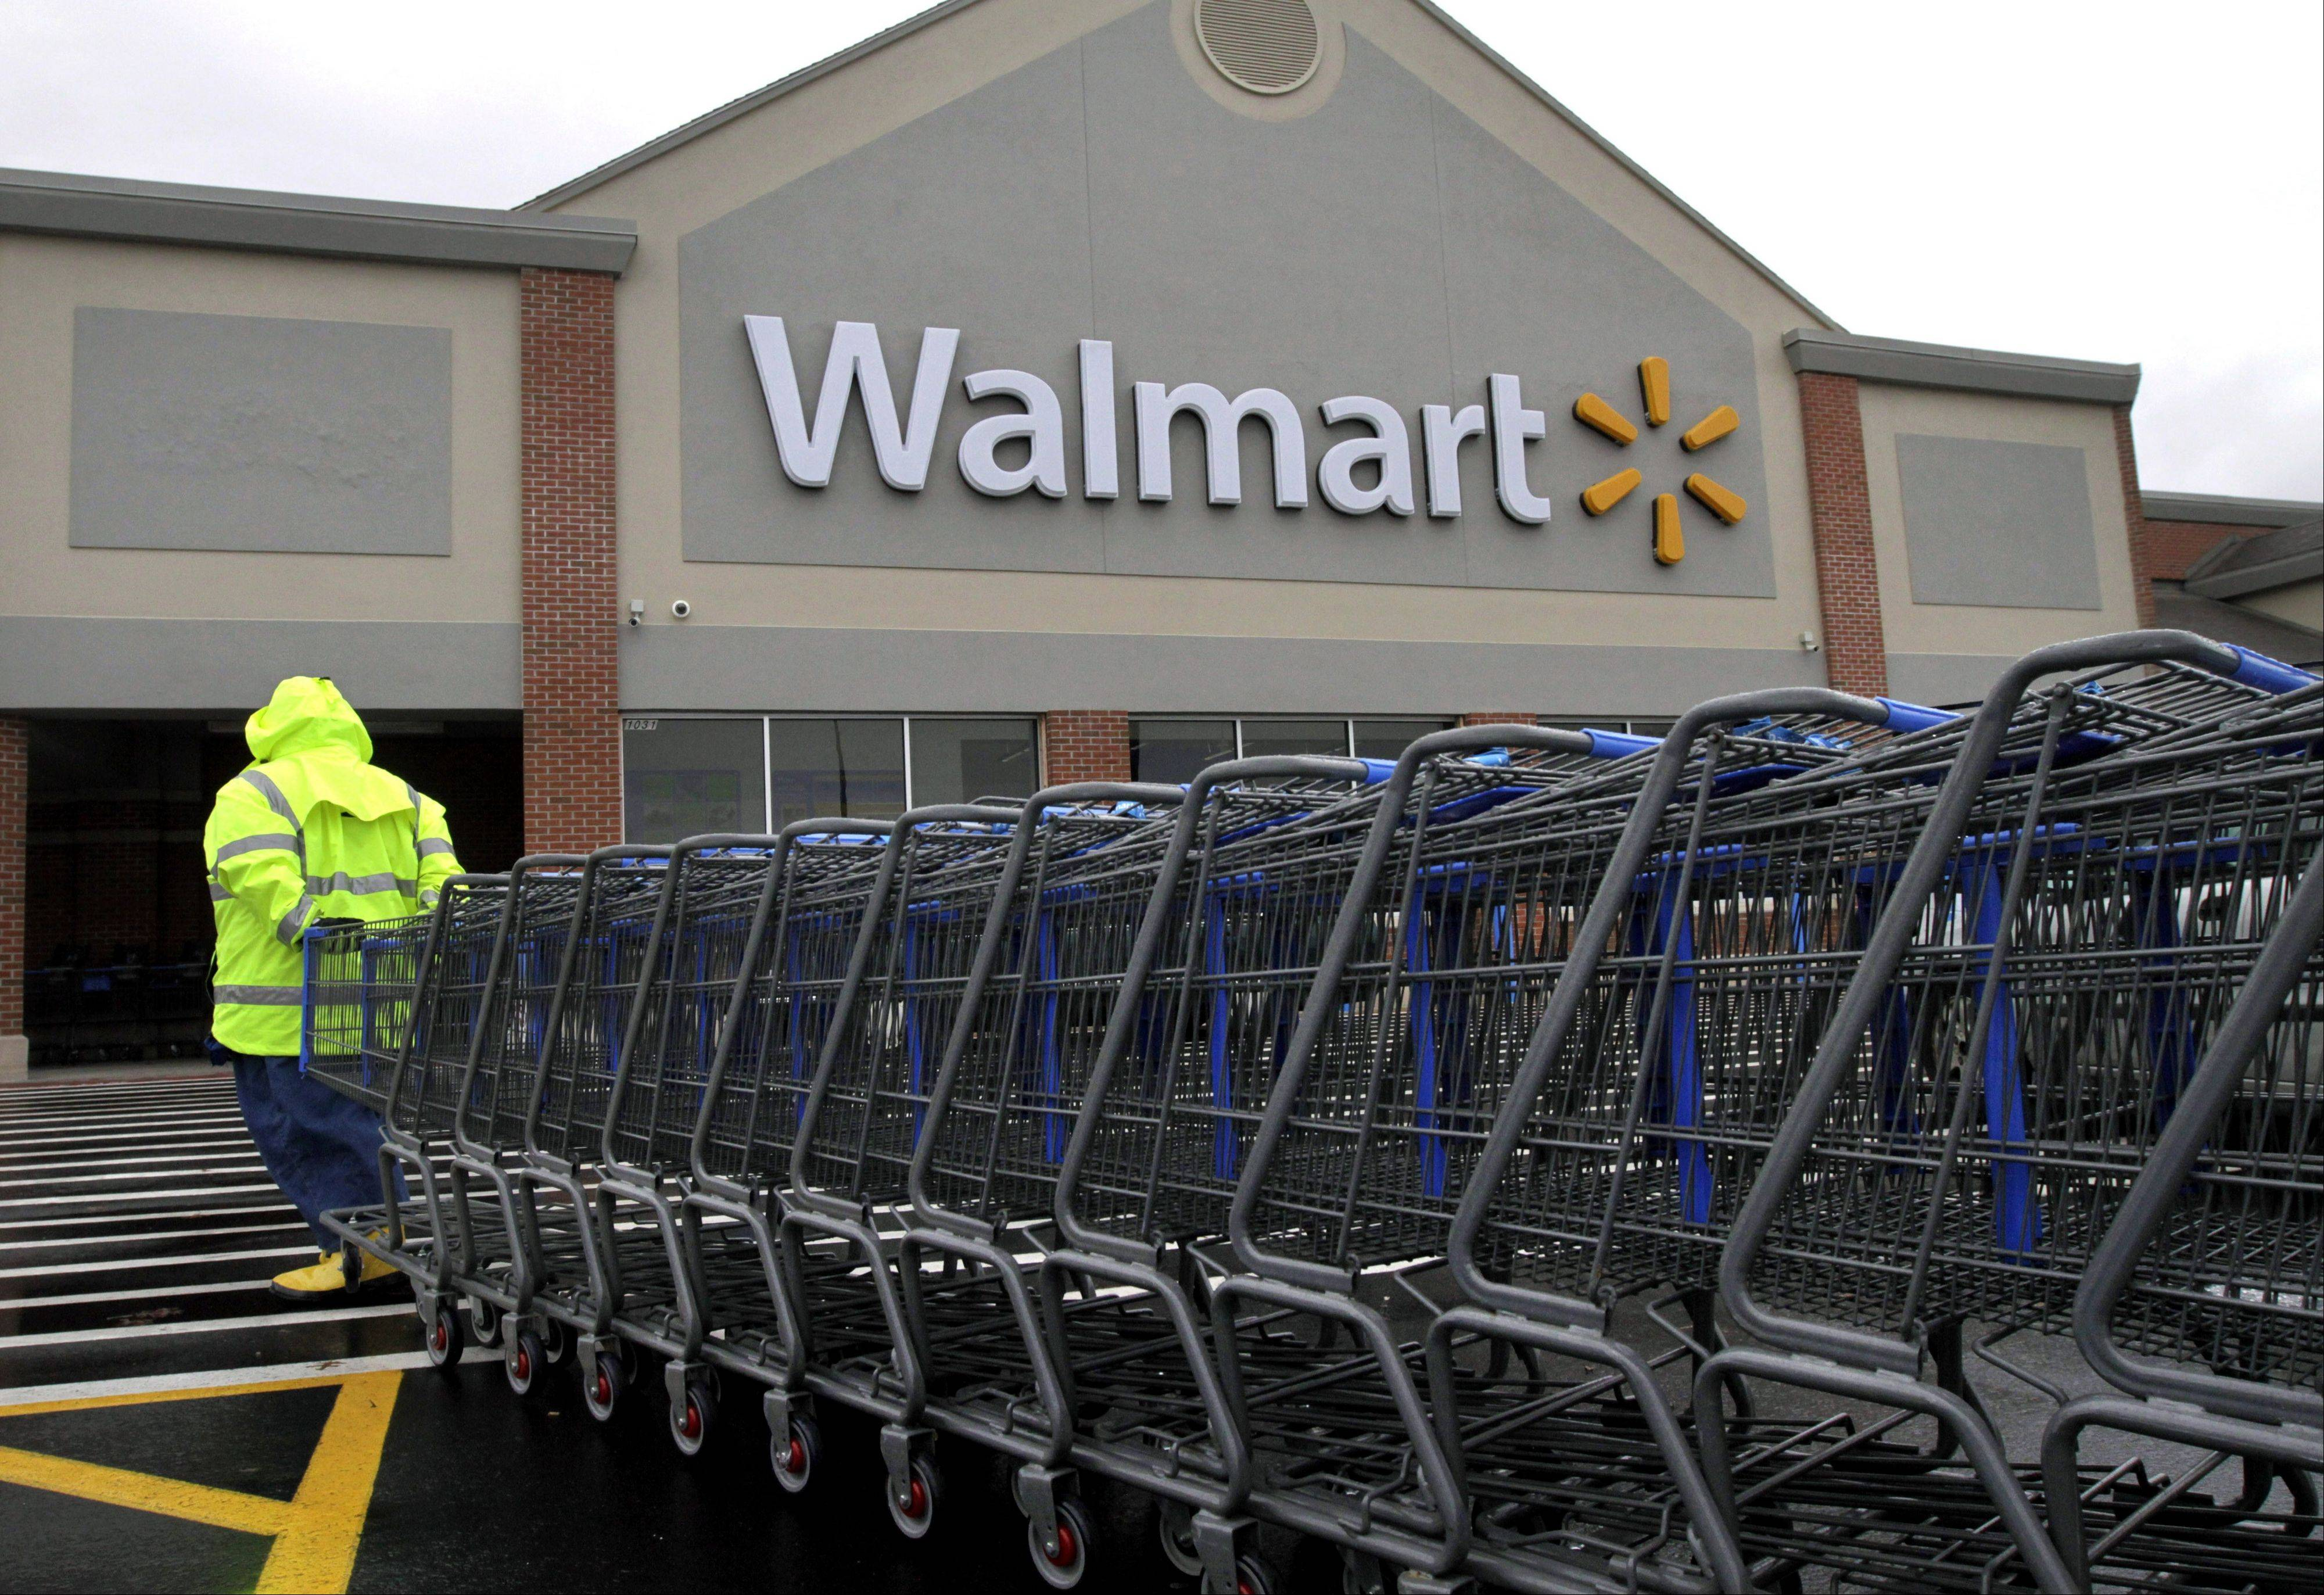 Wal-Mart Stores Inc. reported a 9 percent increase in net income for the third quarter, but revenue for the world�s largest retailer fell below Wall Street forecasts as its low-income shoppers continue to grapple with an uncertain economy.